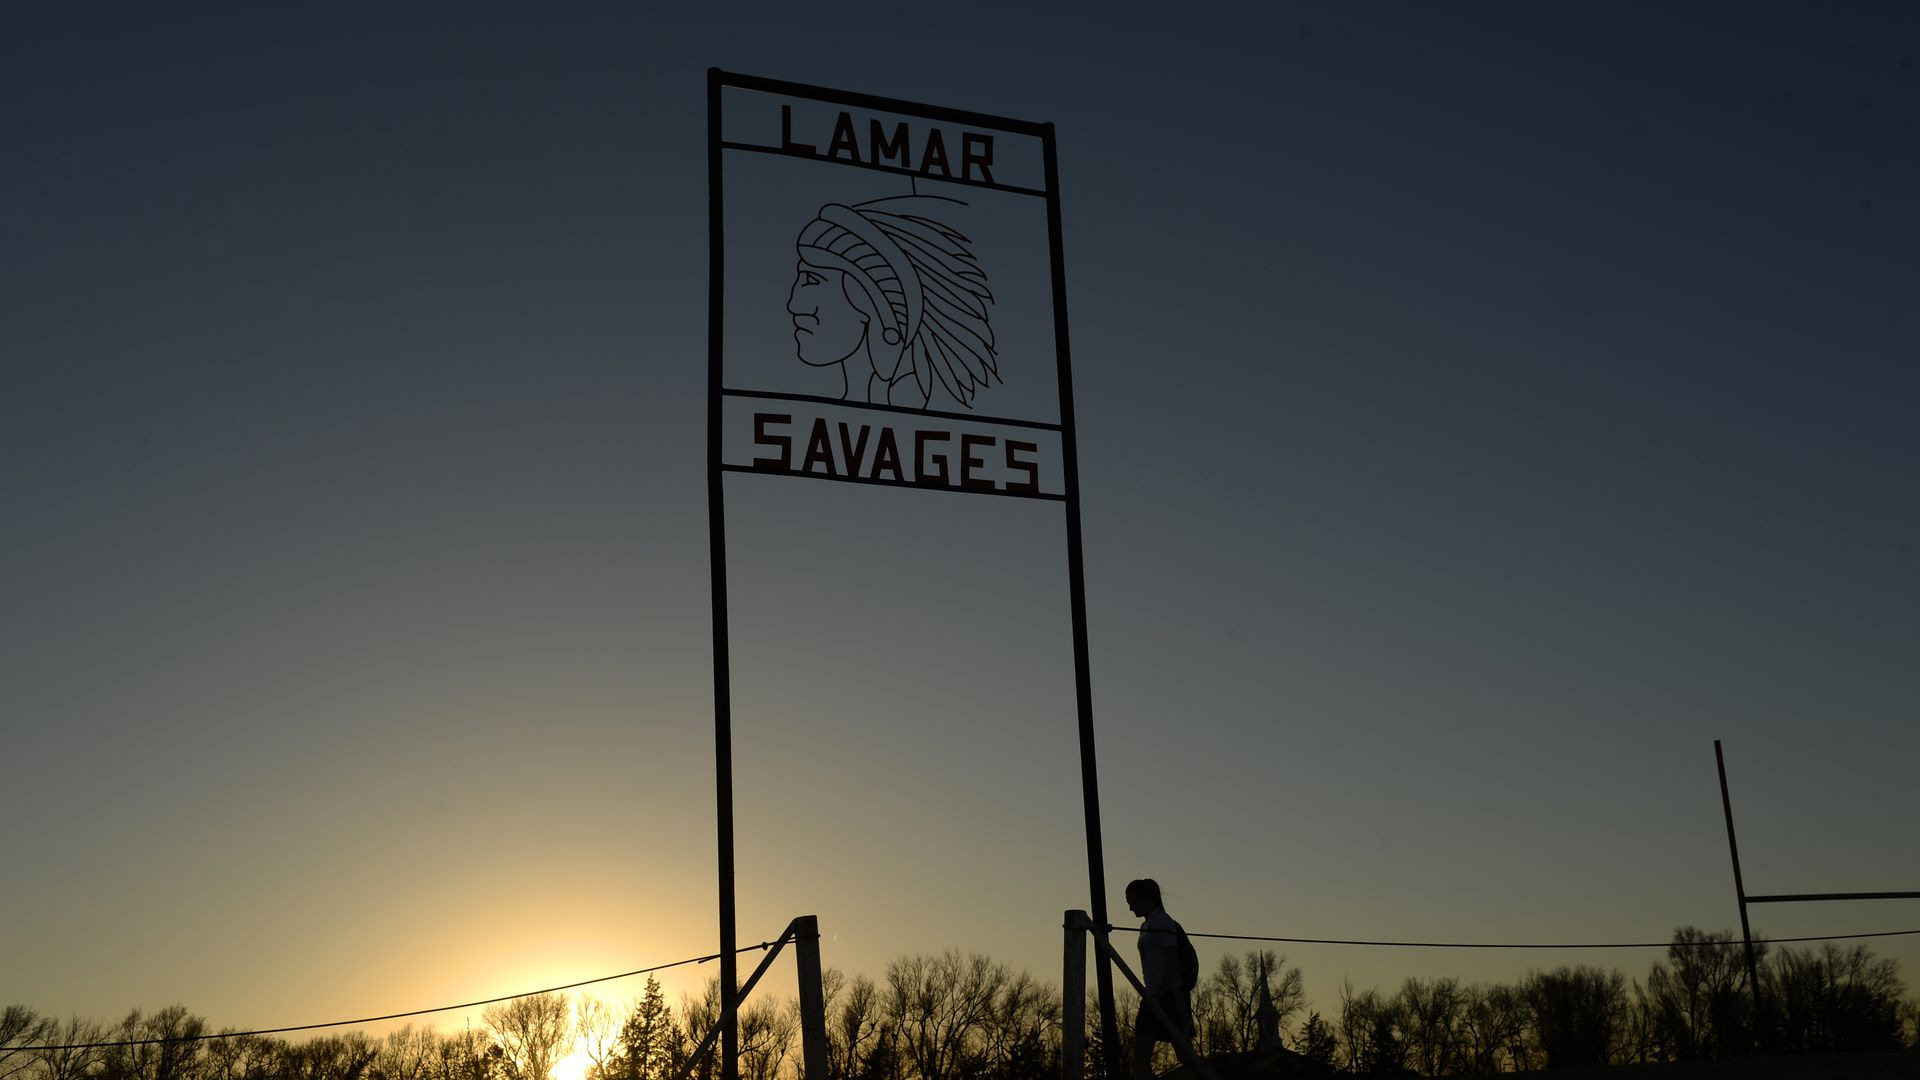 """A photo of the sign at Lamar High School that features a symbol of a Native American man and reads """"Lamar Savages"""""""